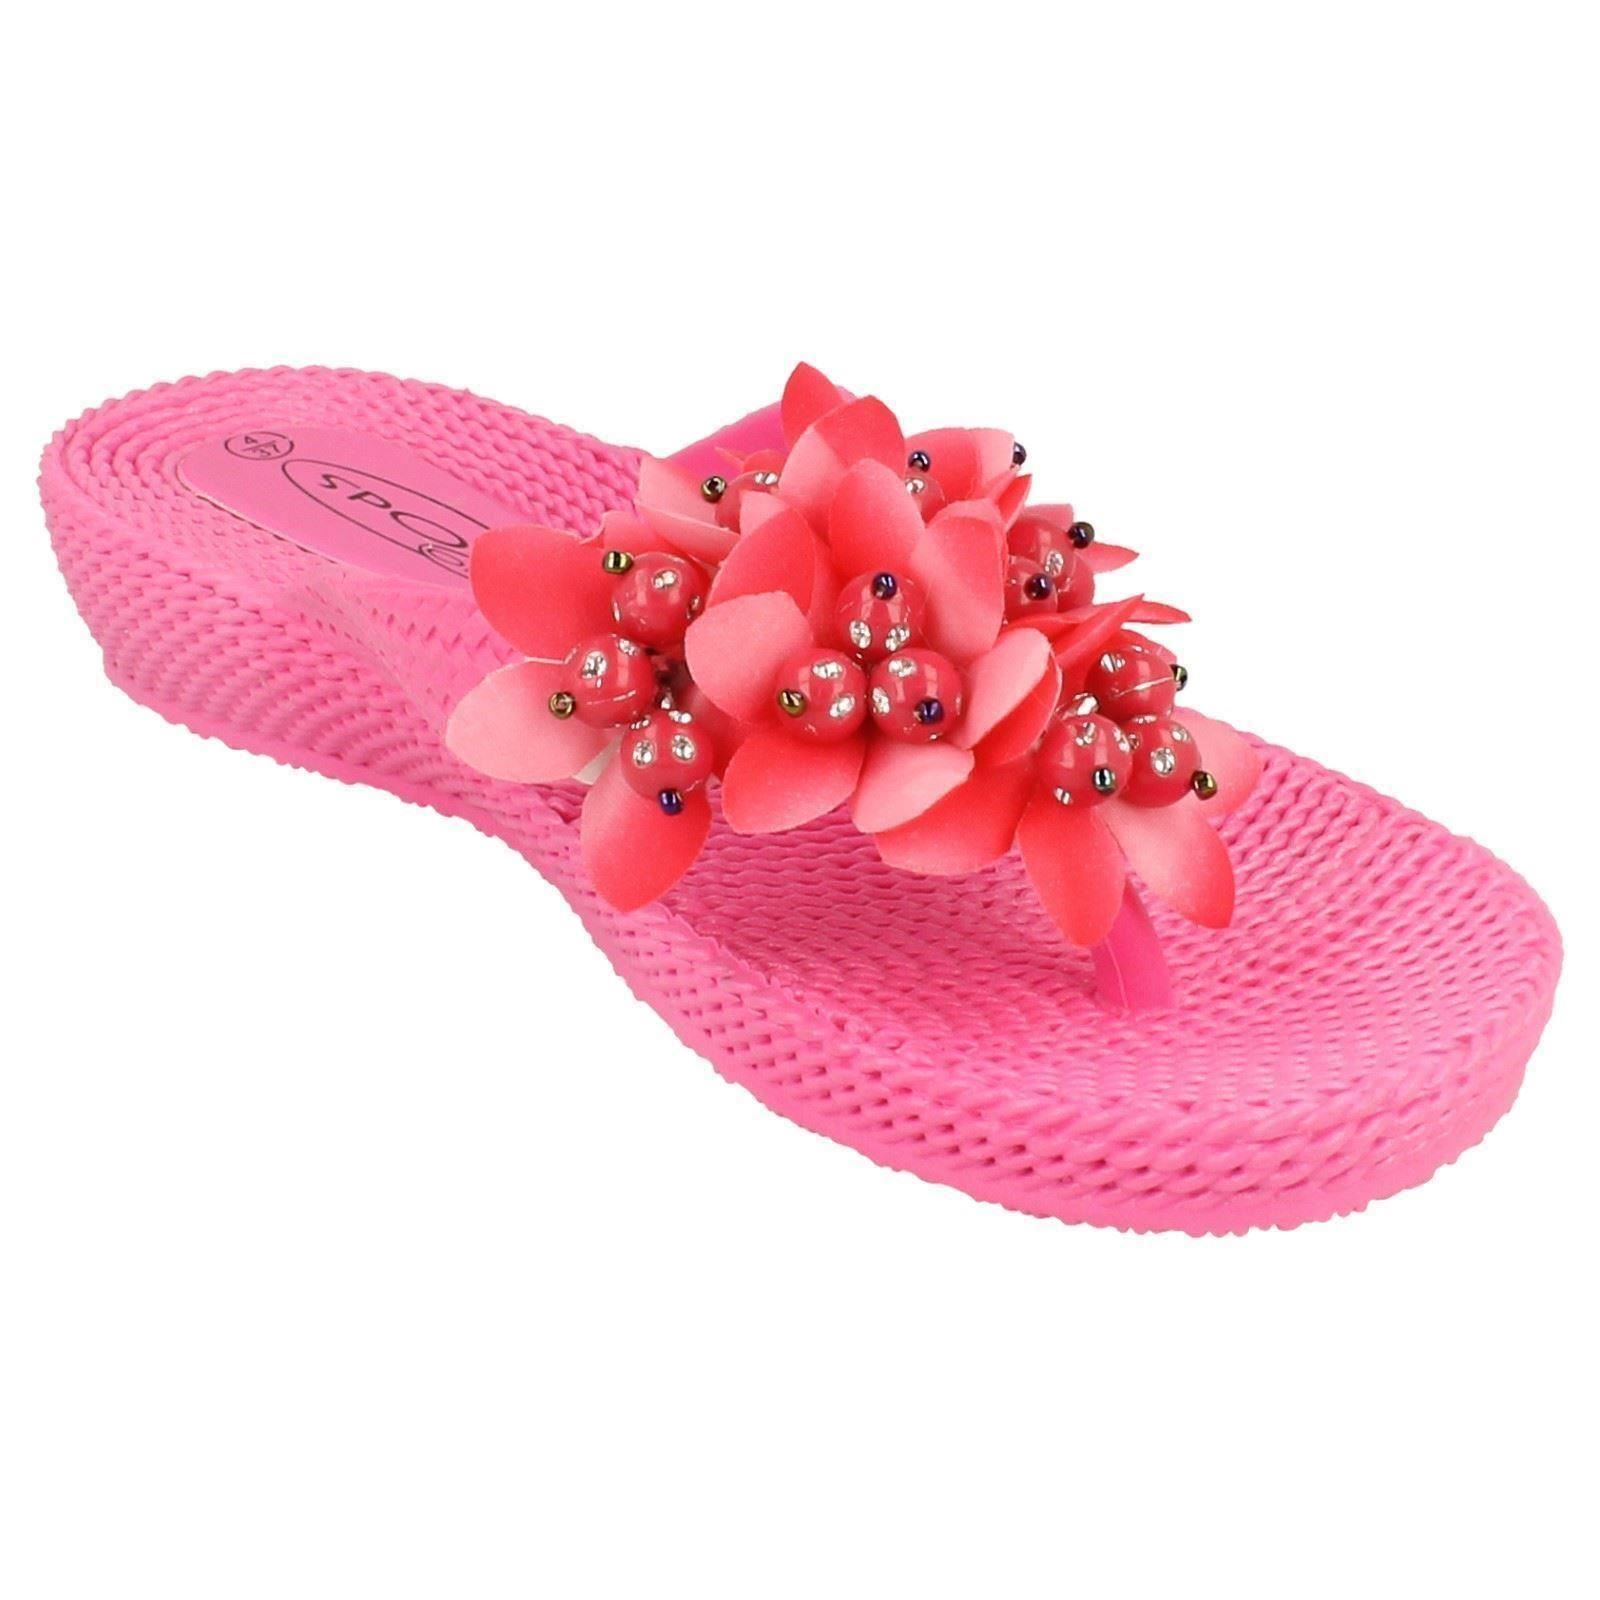 Damas Spot On Sandalias De Cuña Baja Con Detalle Flor Slip On